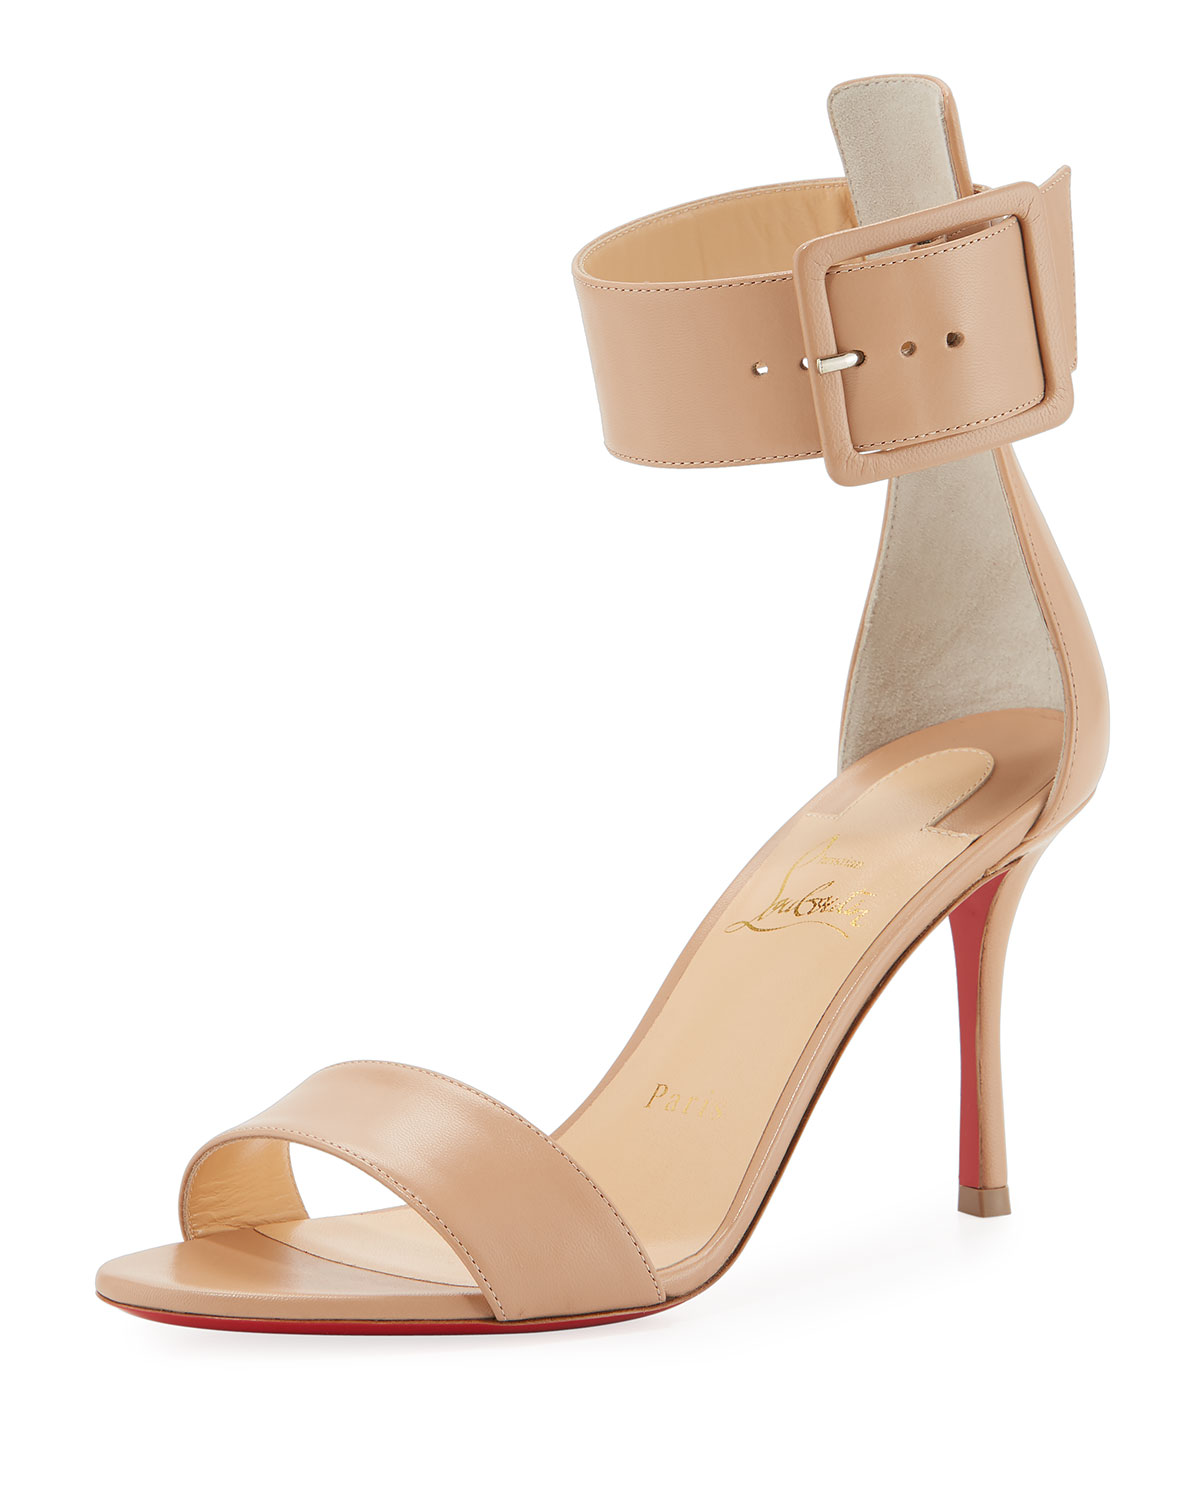 b0af72fb064e Christian Louboutin Blade Runana Ankle-Wrap Red Sole Sandal